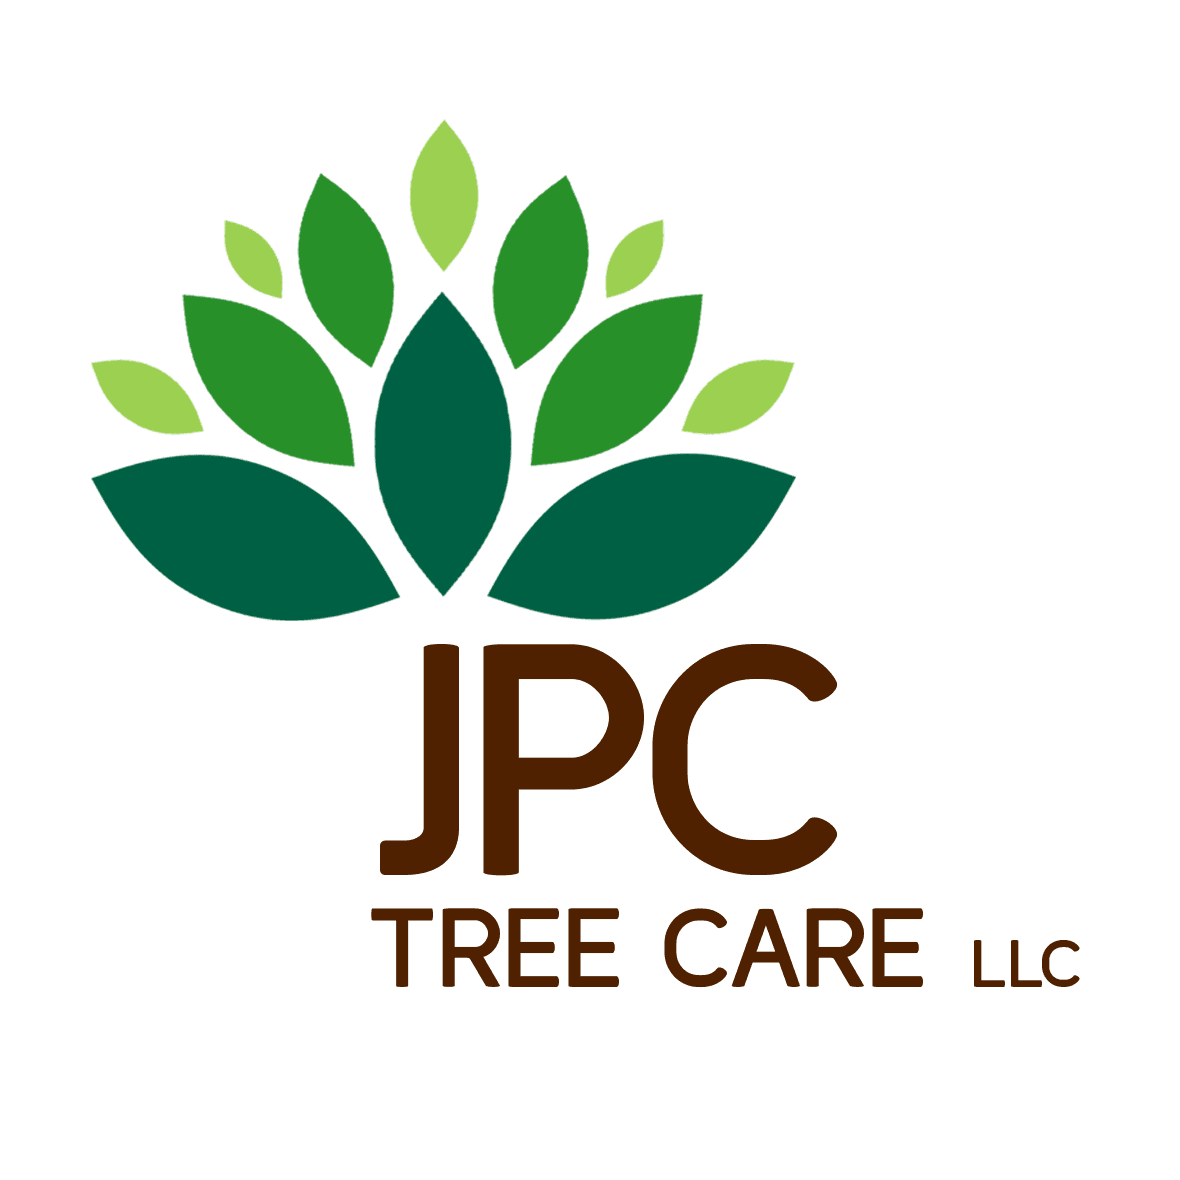 1 STOUT to be largest logo - JCP Tree Care LLC logo